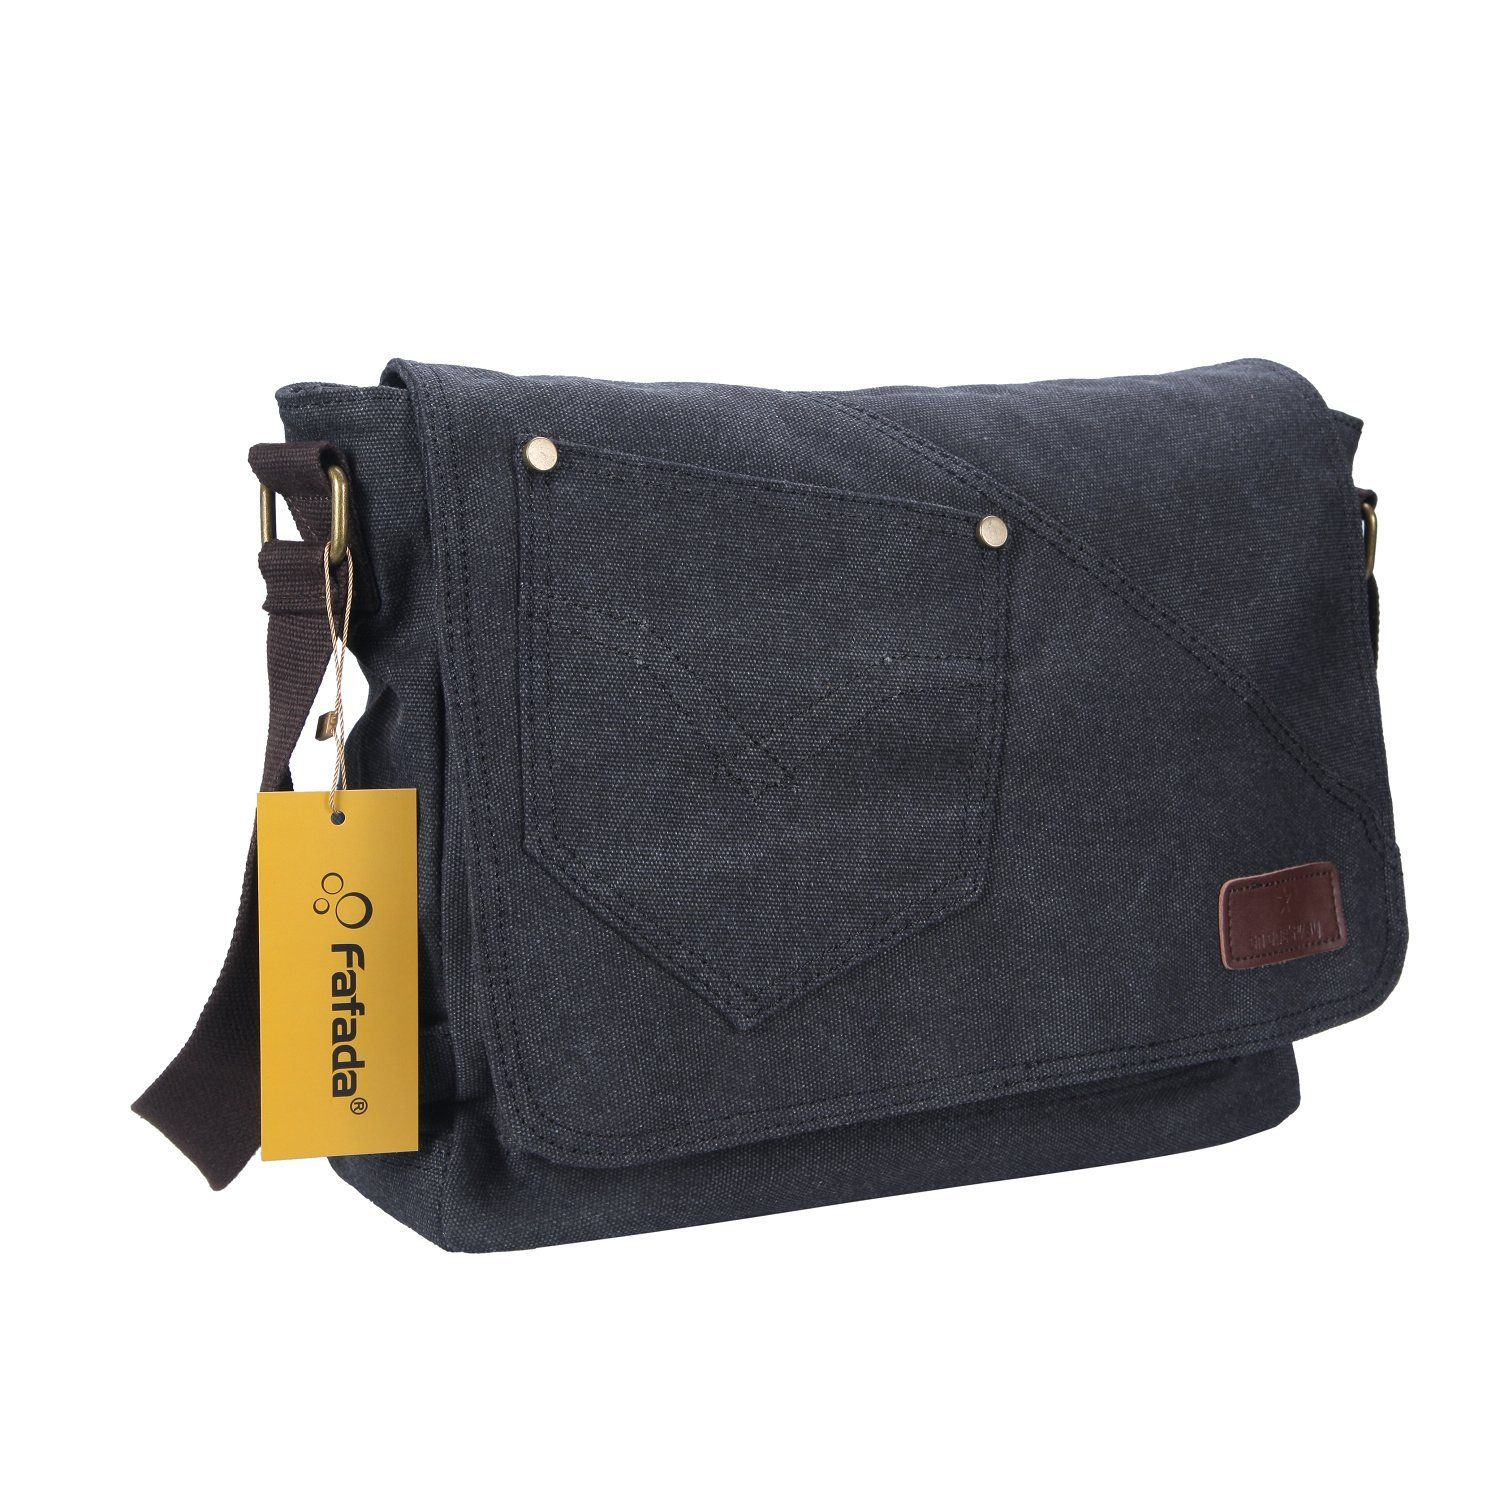 53d4fe2c21 Fafada Unisex Canvas Outdoor Backpack Chest Pack Single Shoulder Bag  î        Tried it! Love it! Click the image.   Backpack